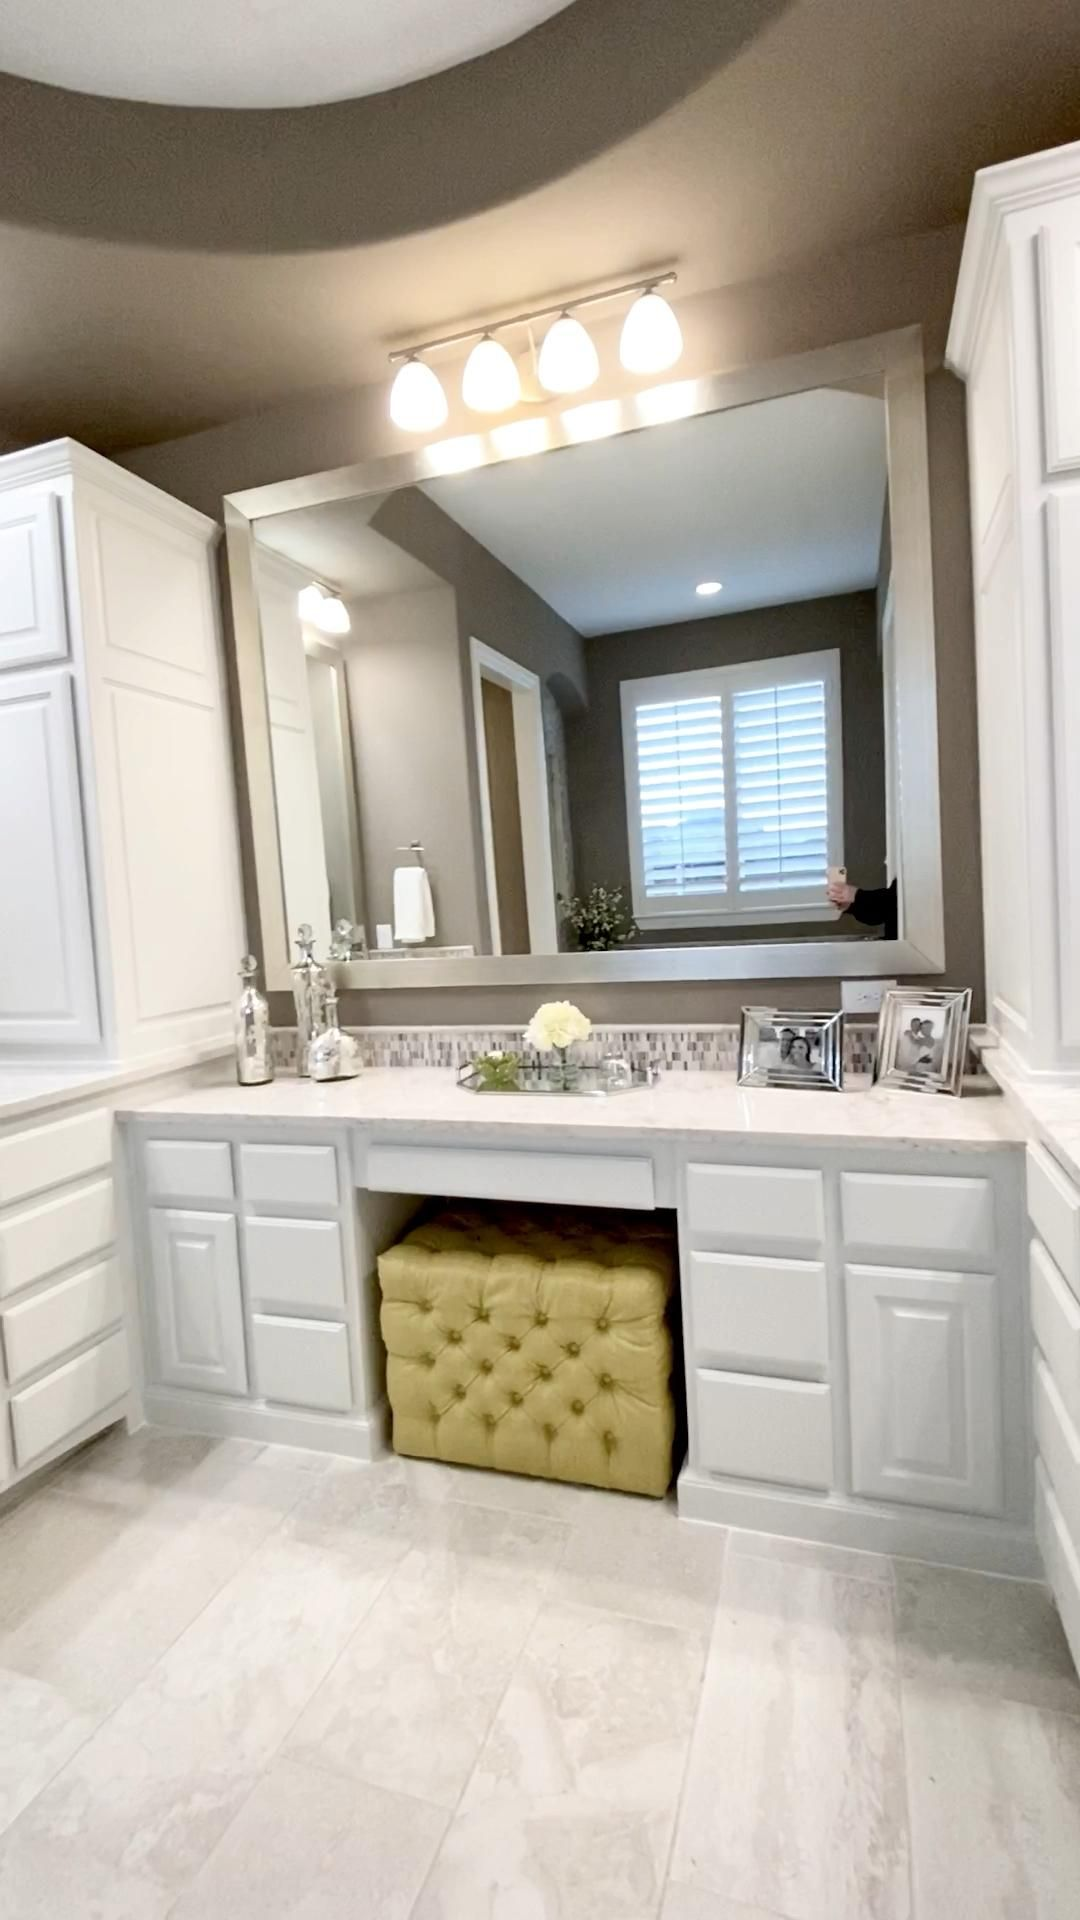 Bathroom design with white cabinets and dark taupe